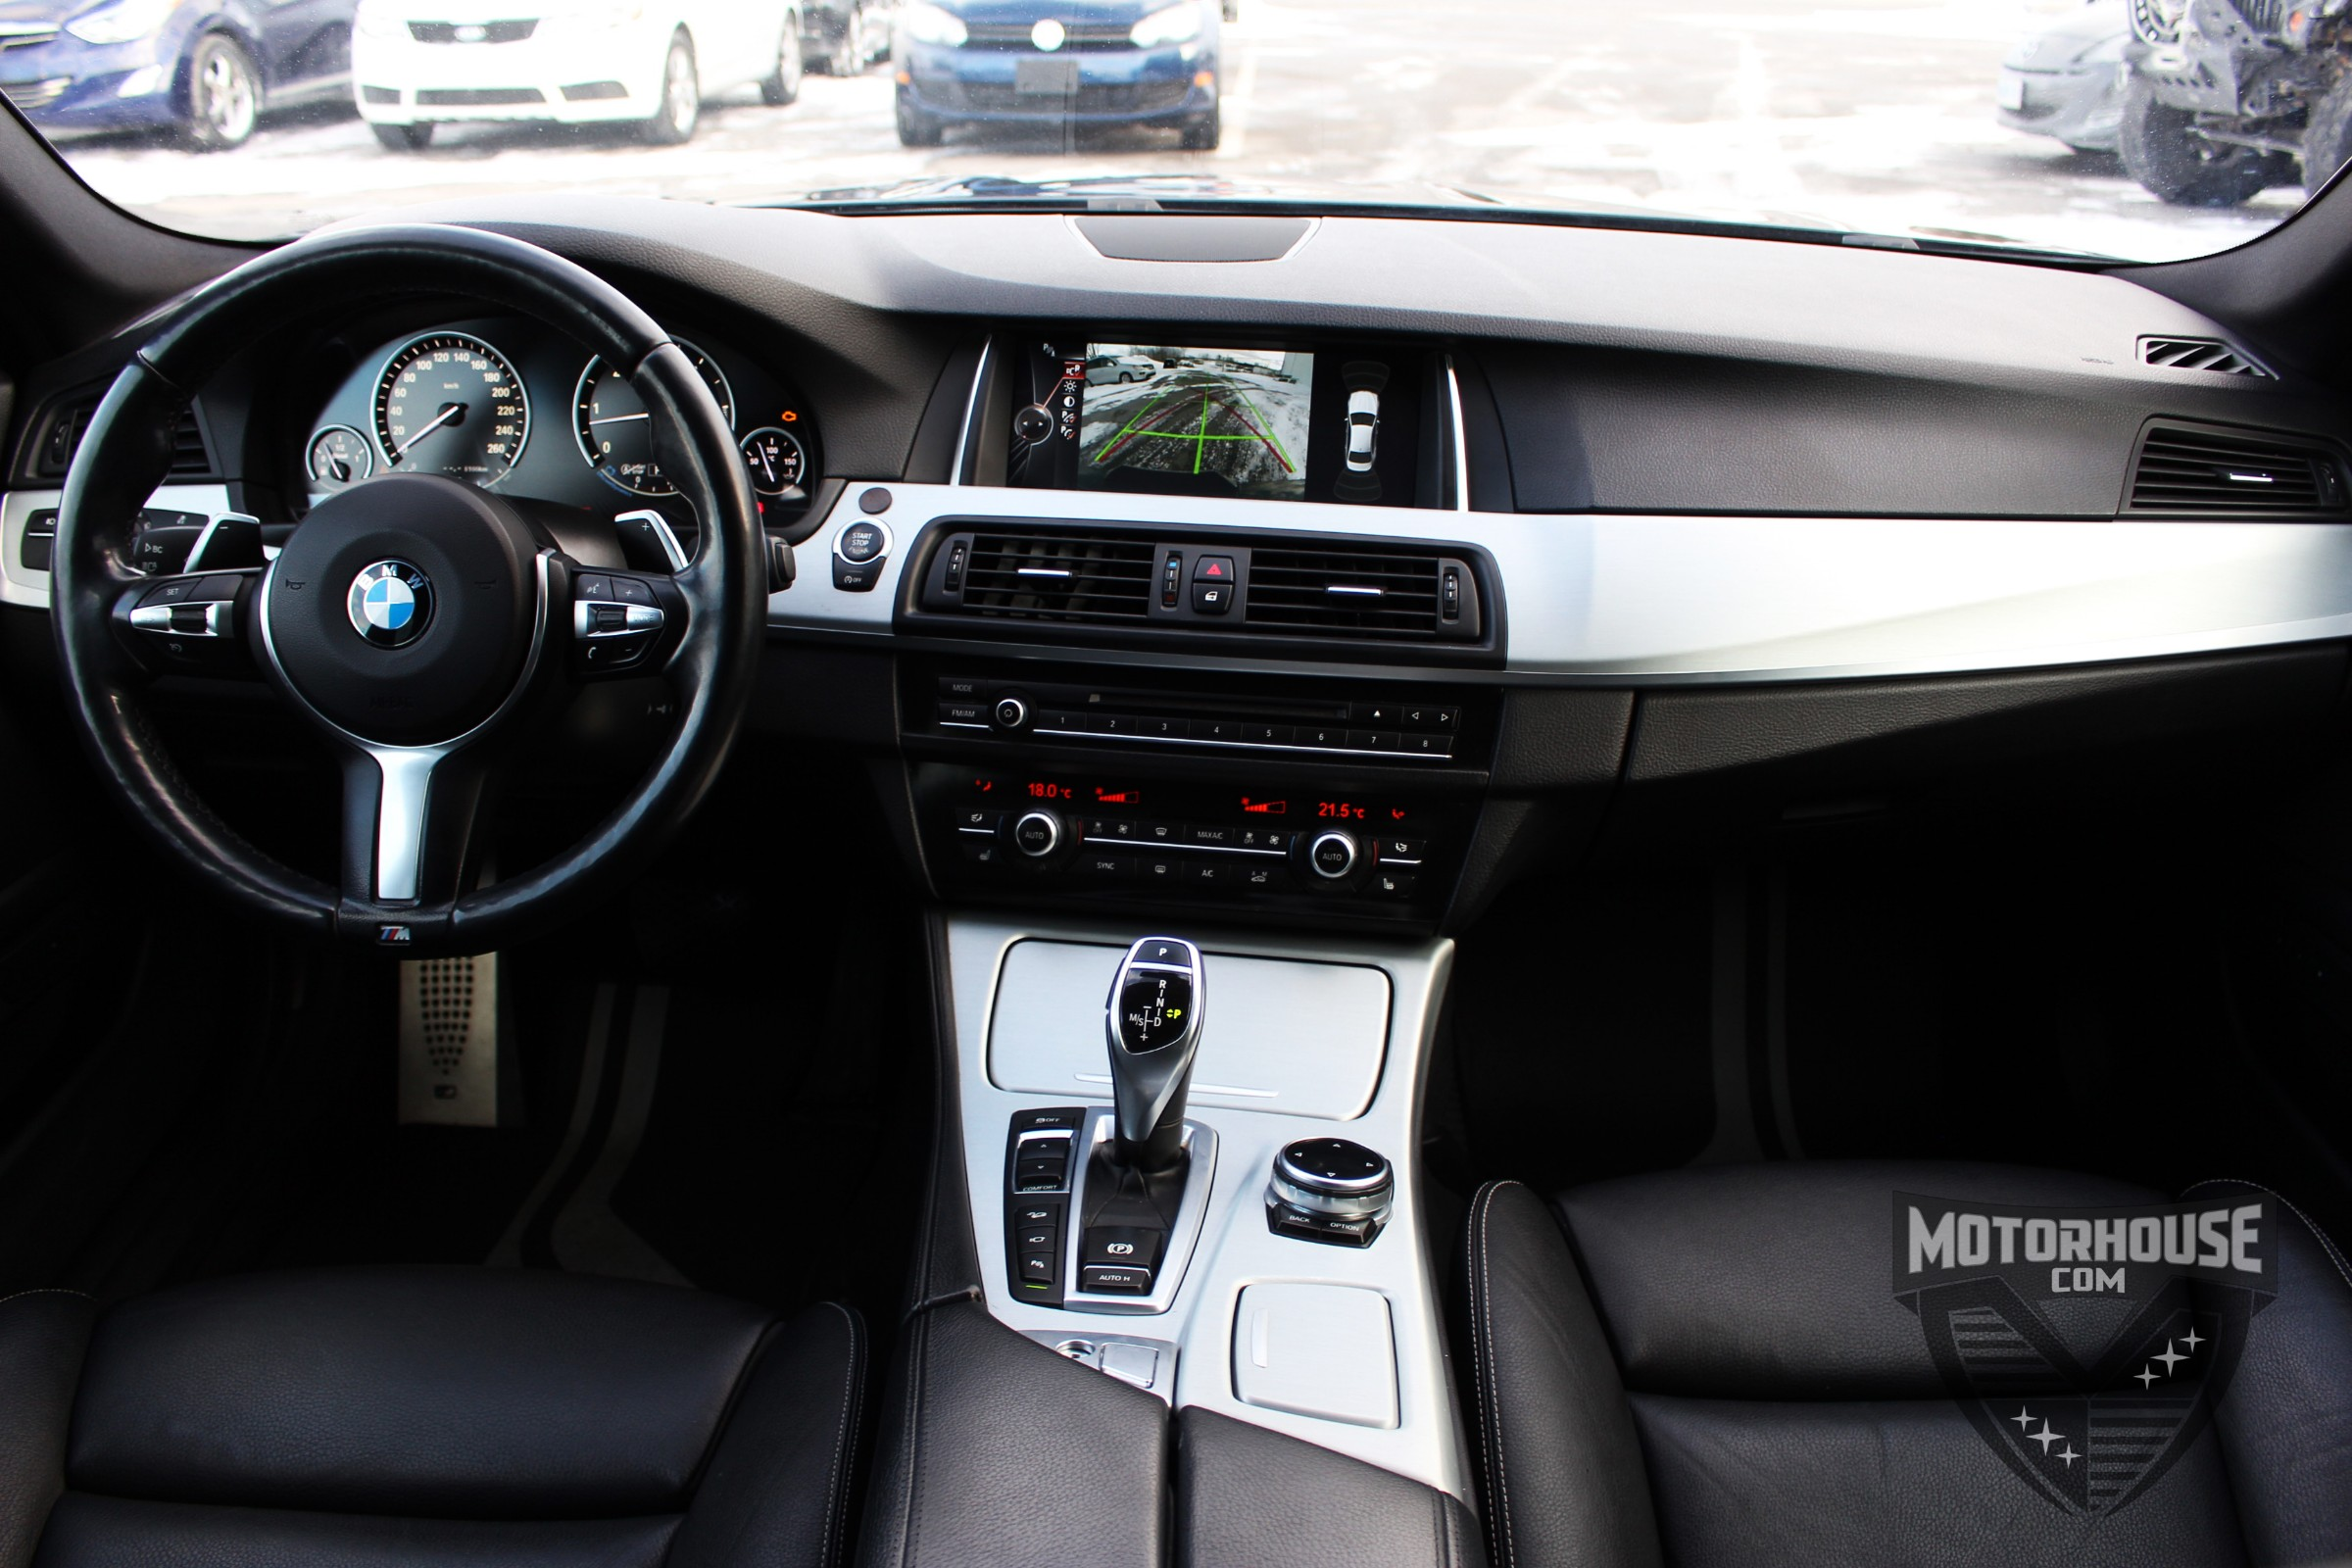 2014 BMW 535d xDrive (Stk: 1641) in Carleton Place - Image 20 of 31